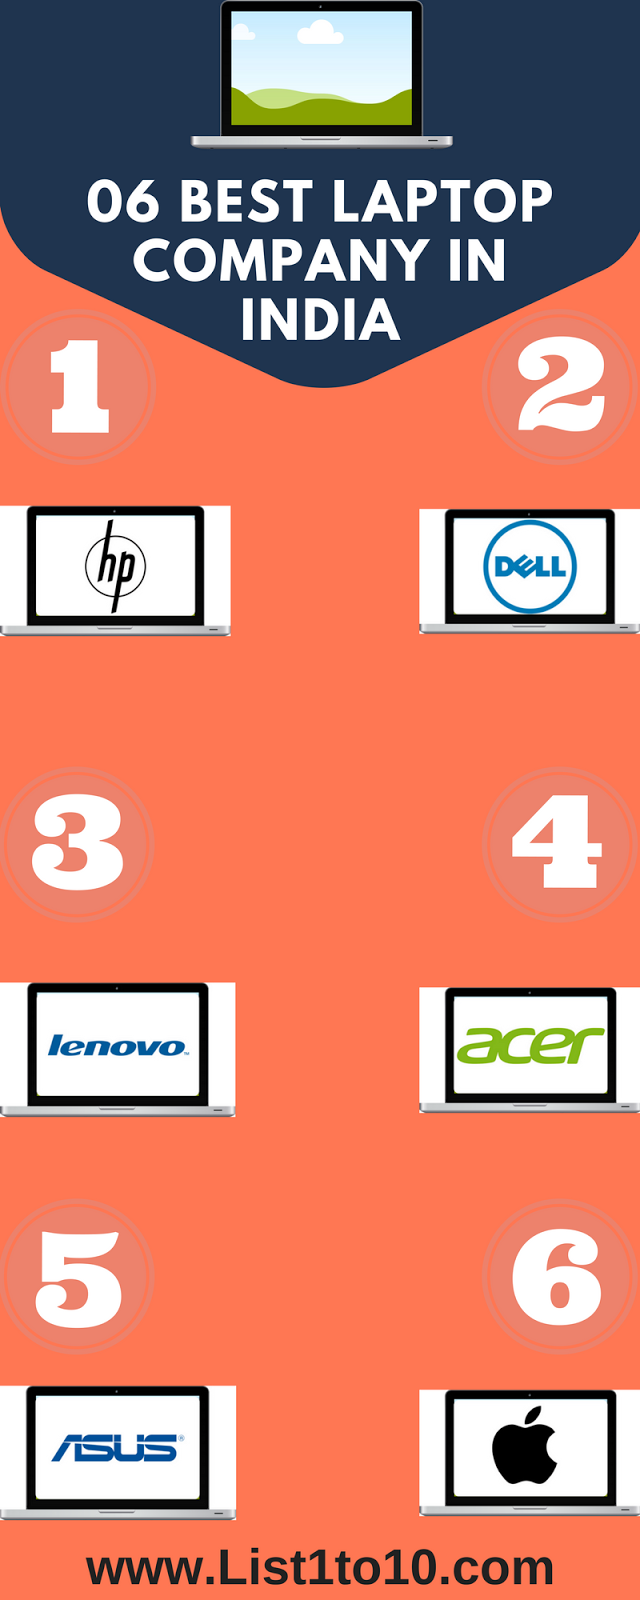 6_Best_Laptops_Company_In_India